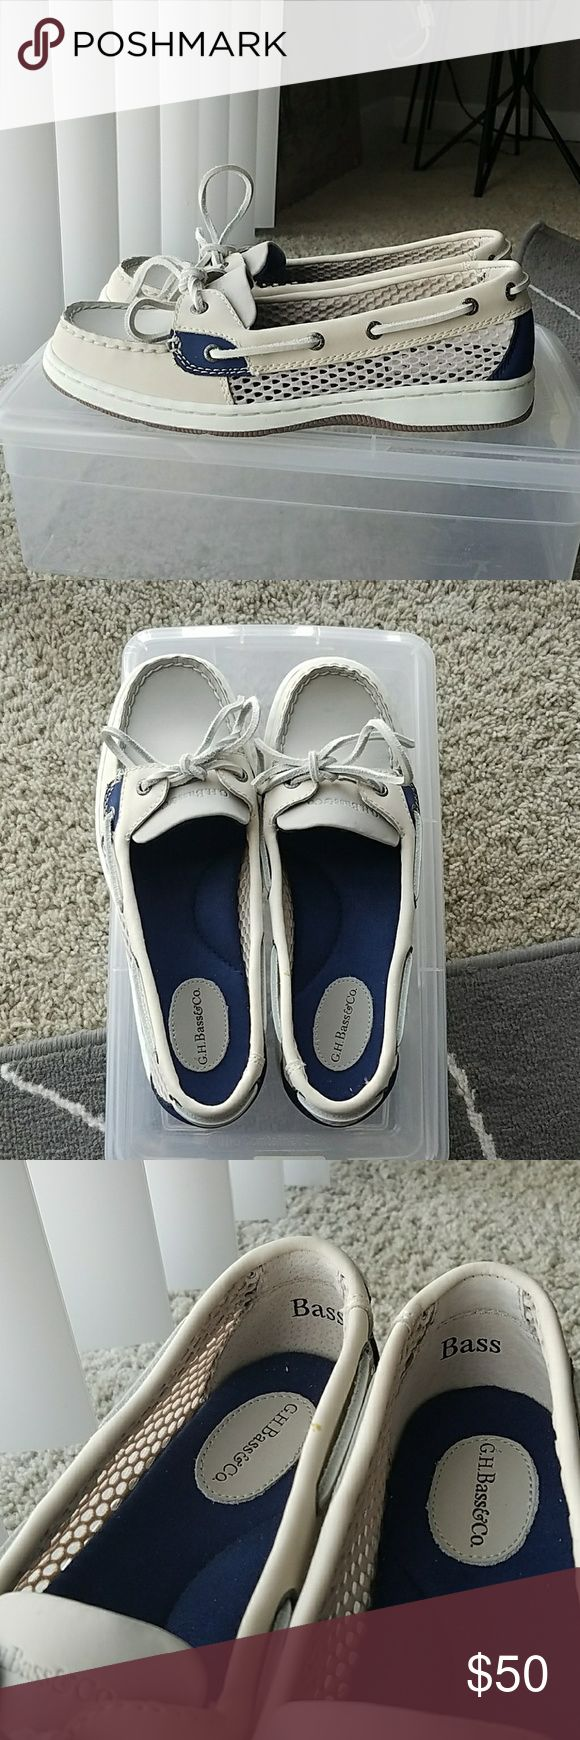 Boat Shoes G.H. Bass & Co dark blue and light cream (almost white) boat shoes. Size 7. Brand new (never worn). Mesh sides. G.H. Bass & Co. Shoes Flats & Loafers